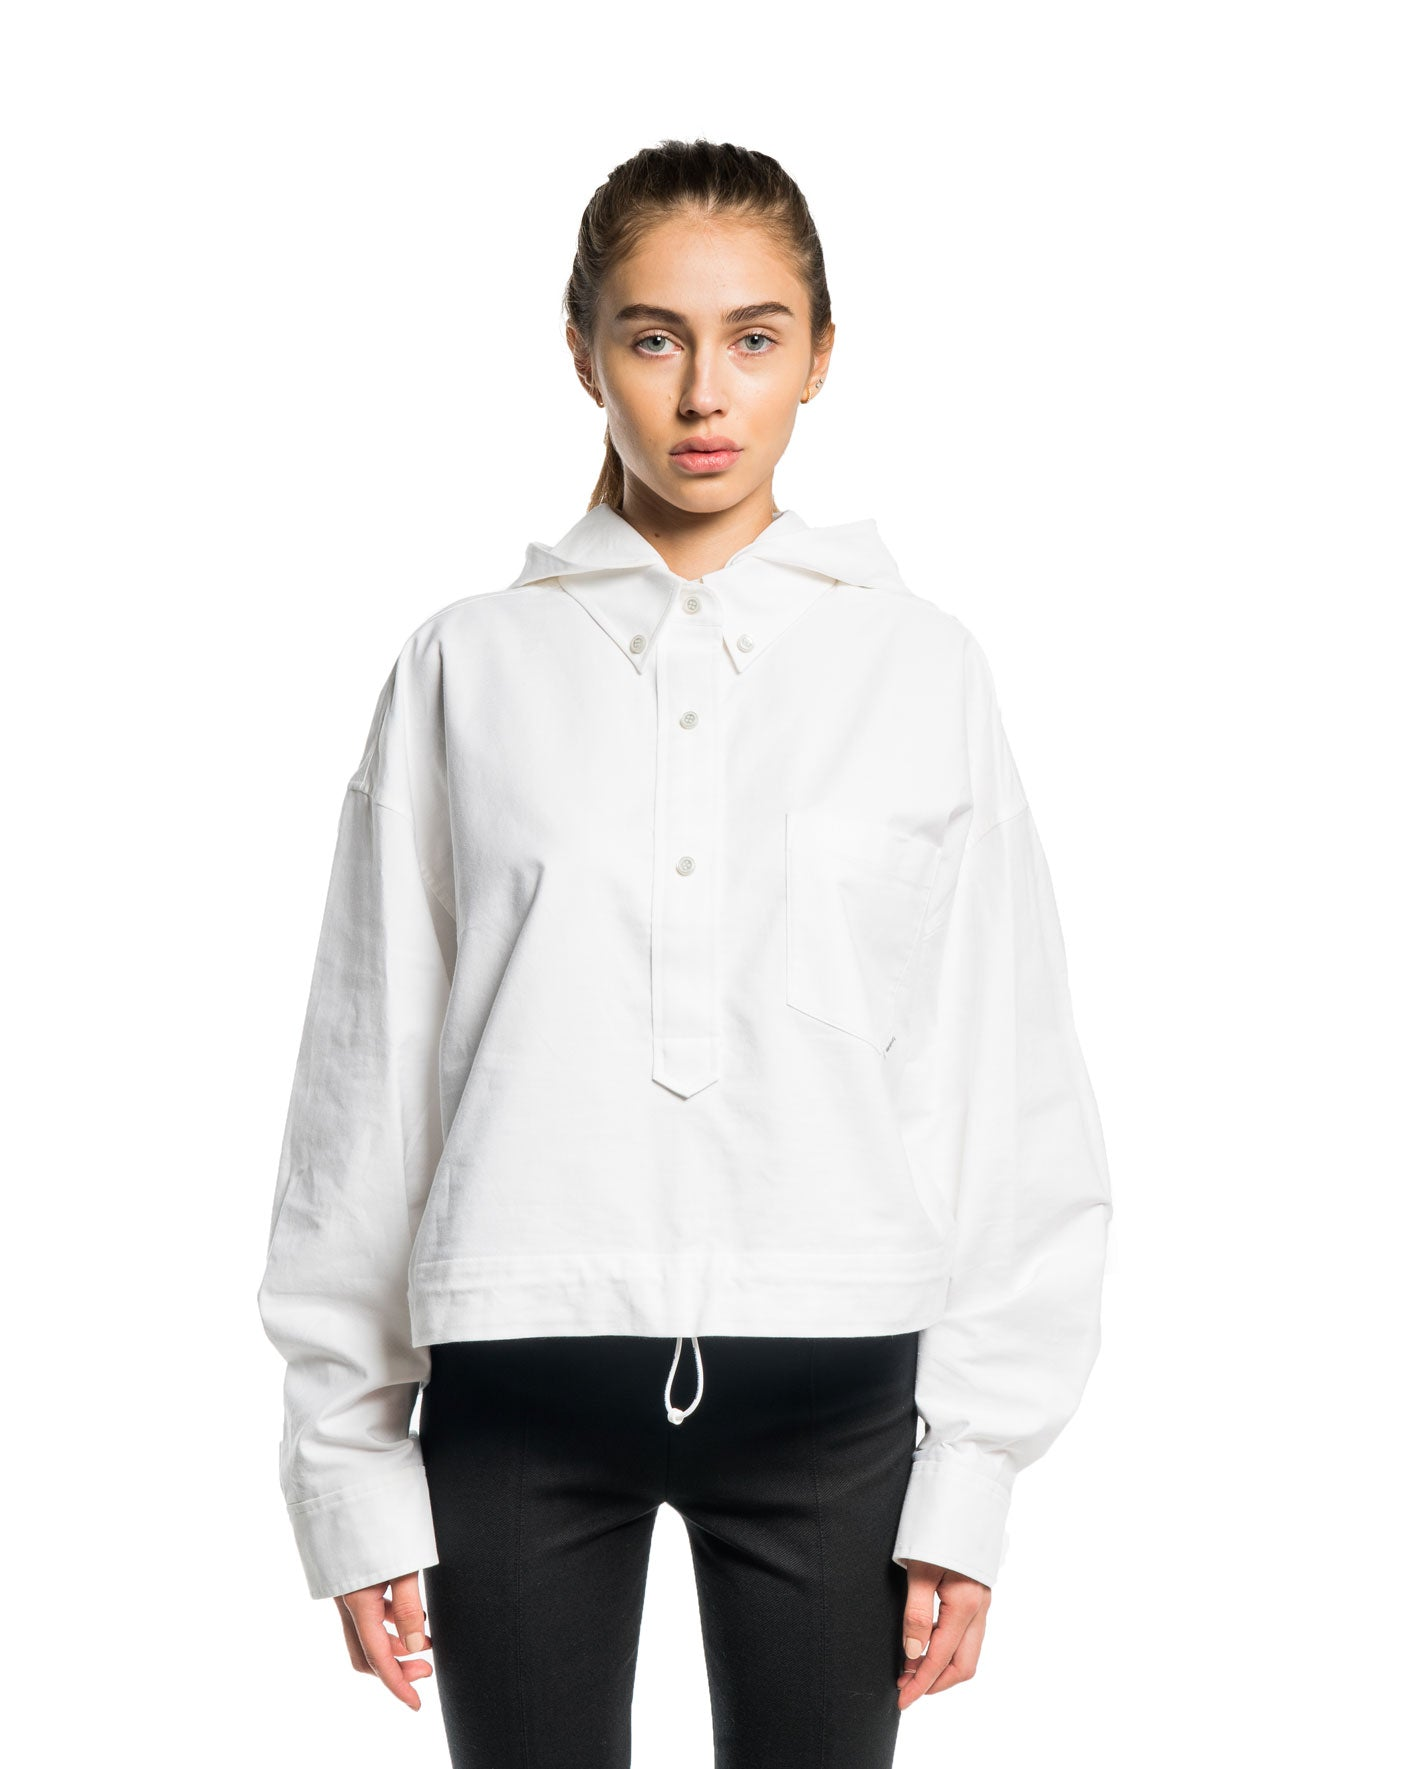 Alexander Wang Henly Shirt Jacket White